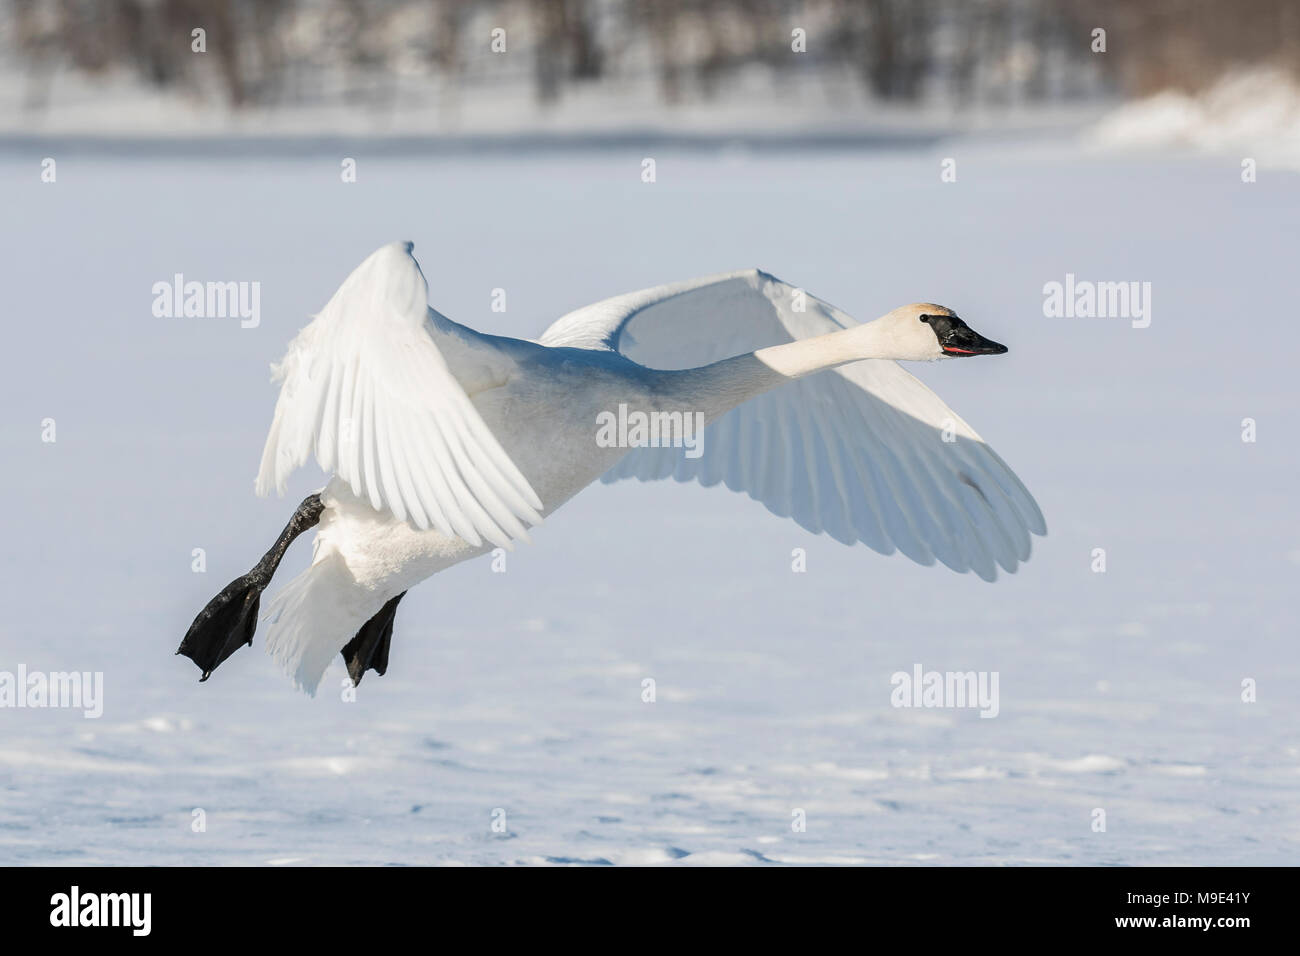 Trumpeter swan (Cygnus buccinator) landing on the frozen St. Croix River. WI, USA, early January, by Dominique Braud/Dembinsky Photo Assoc Stock Photo